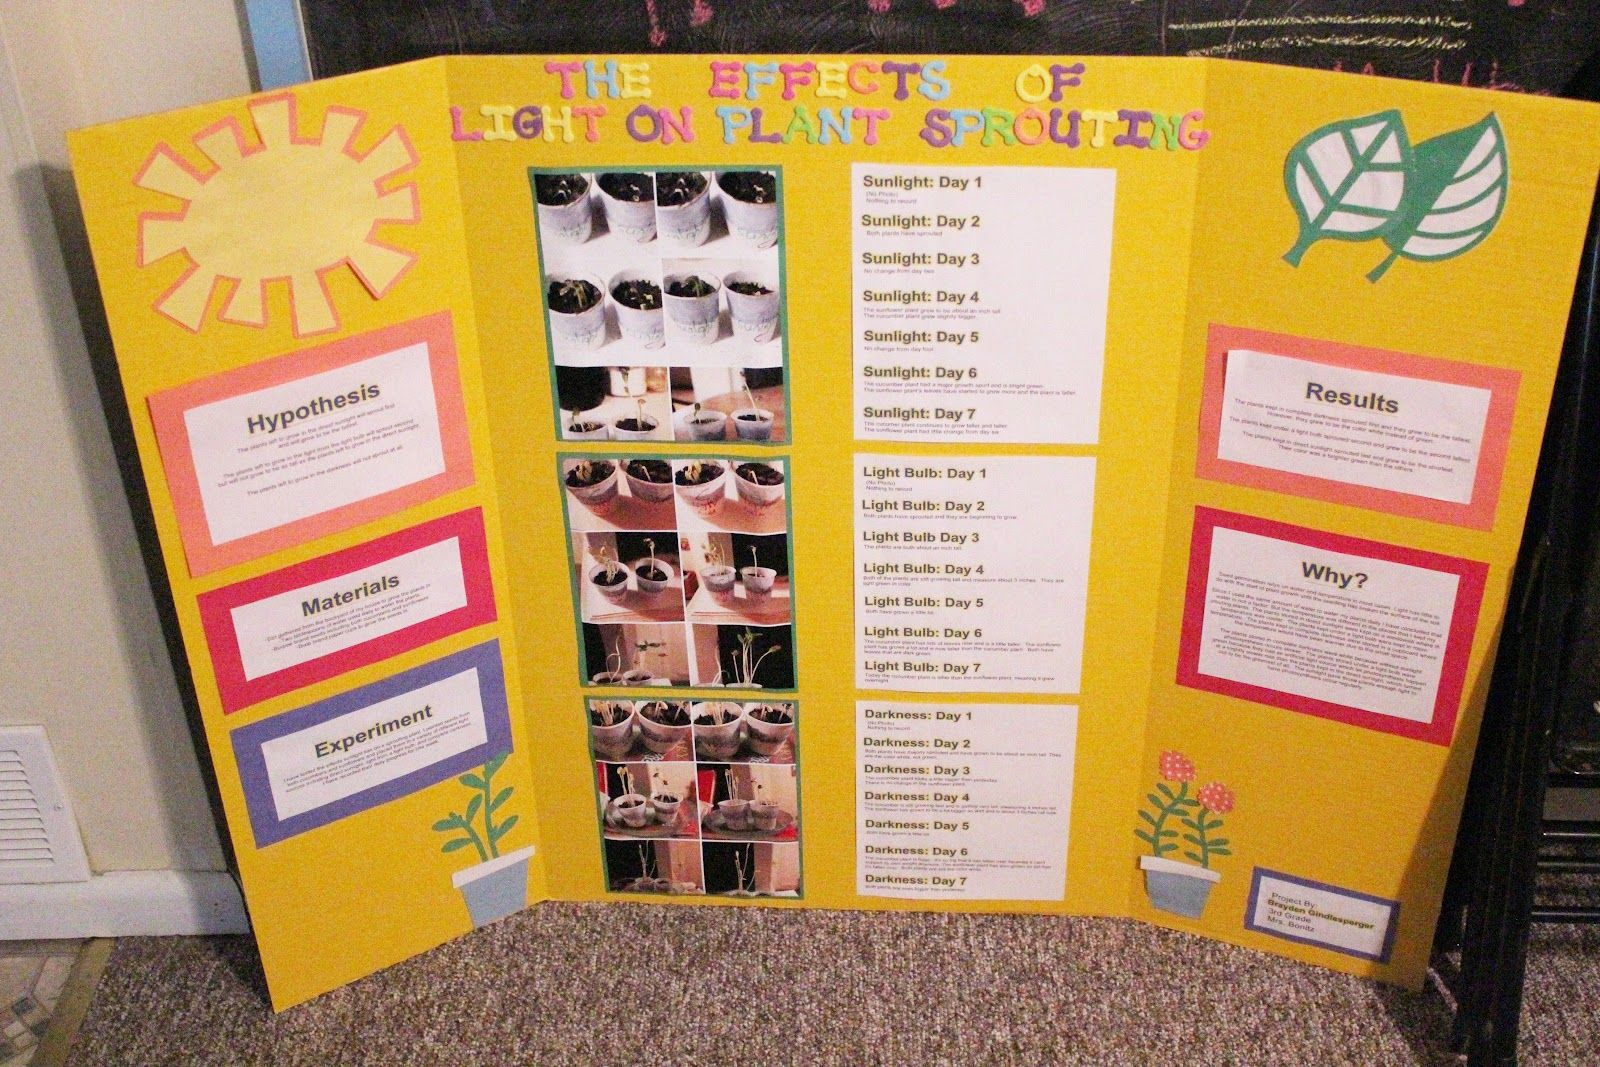 Science Fair Projects On Plants